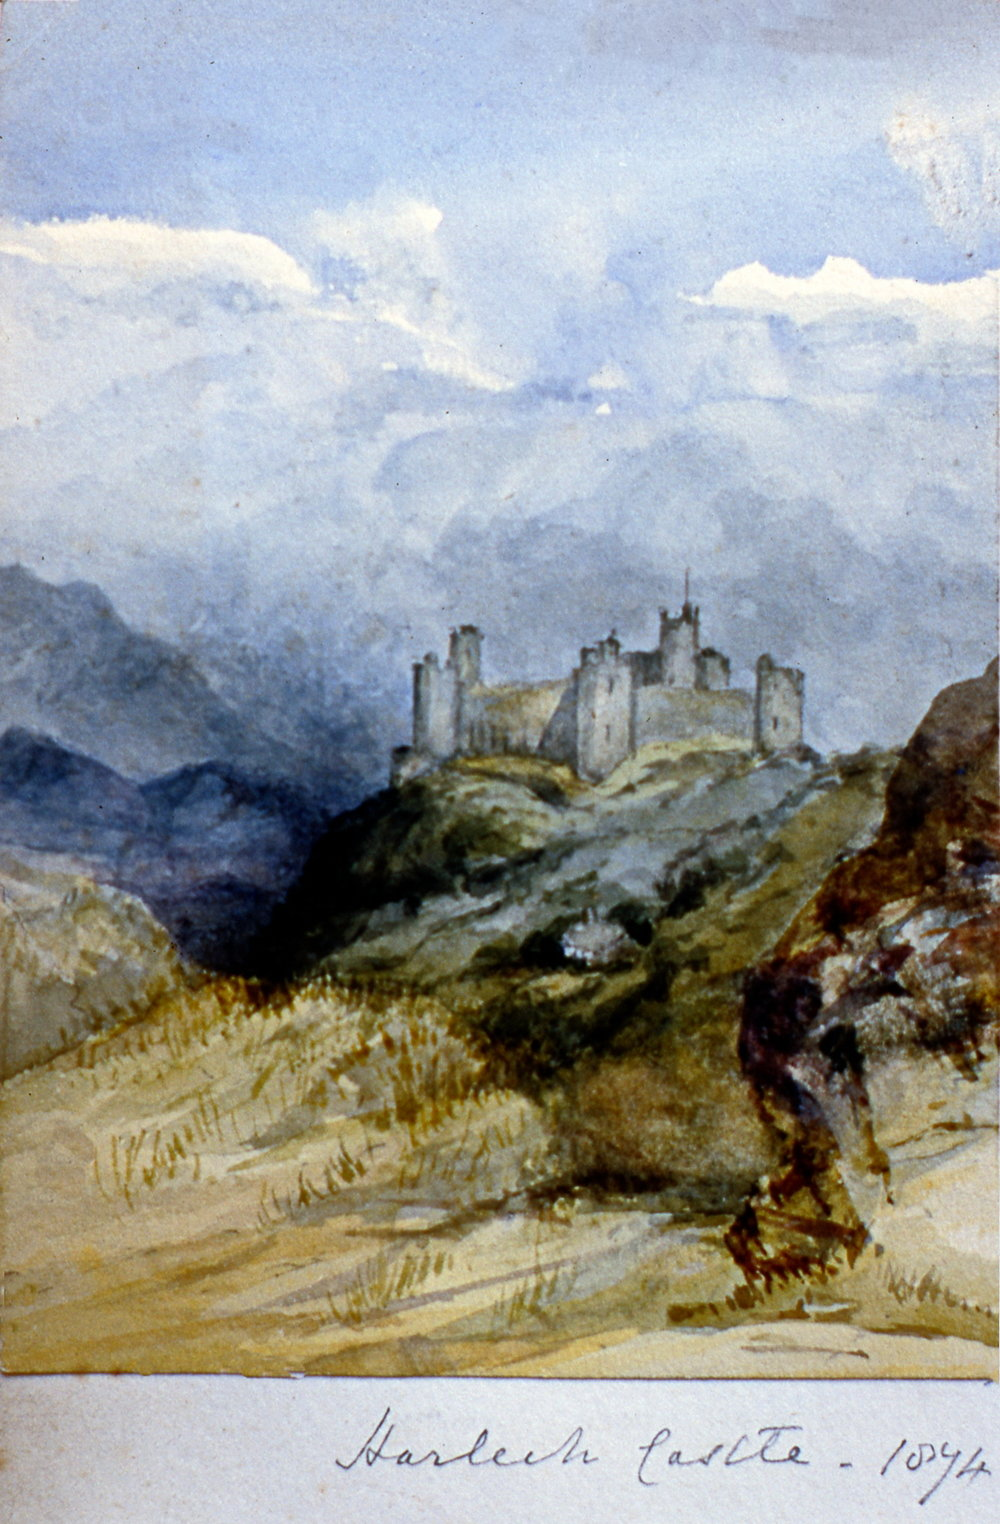 "Harleck Castle 1874 , 1874, Julia Bullock Webster, watercolour on paper, 5 5/8""  x 4 1/8"", 2003.02.47, gift of The Grist Mill at Keremeos"